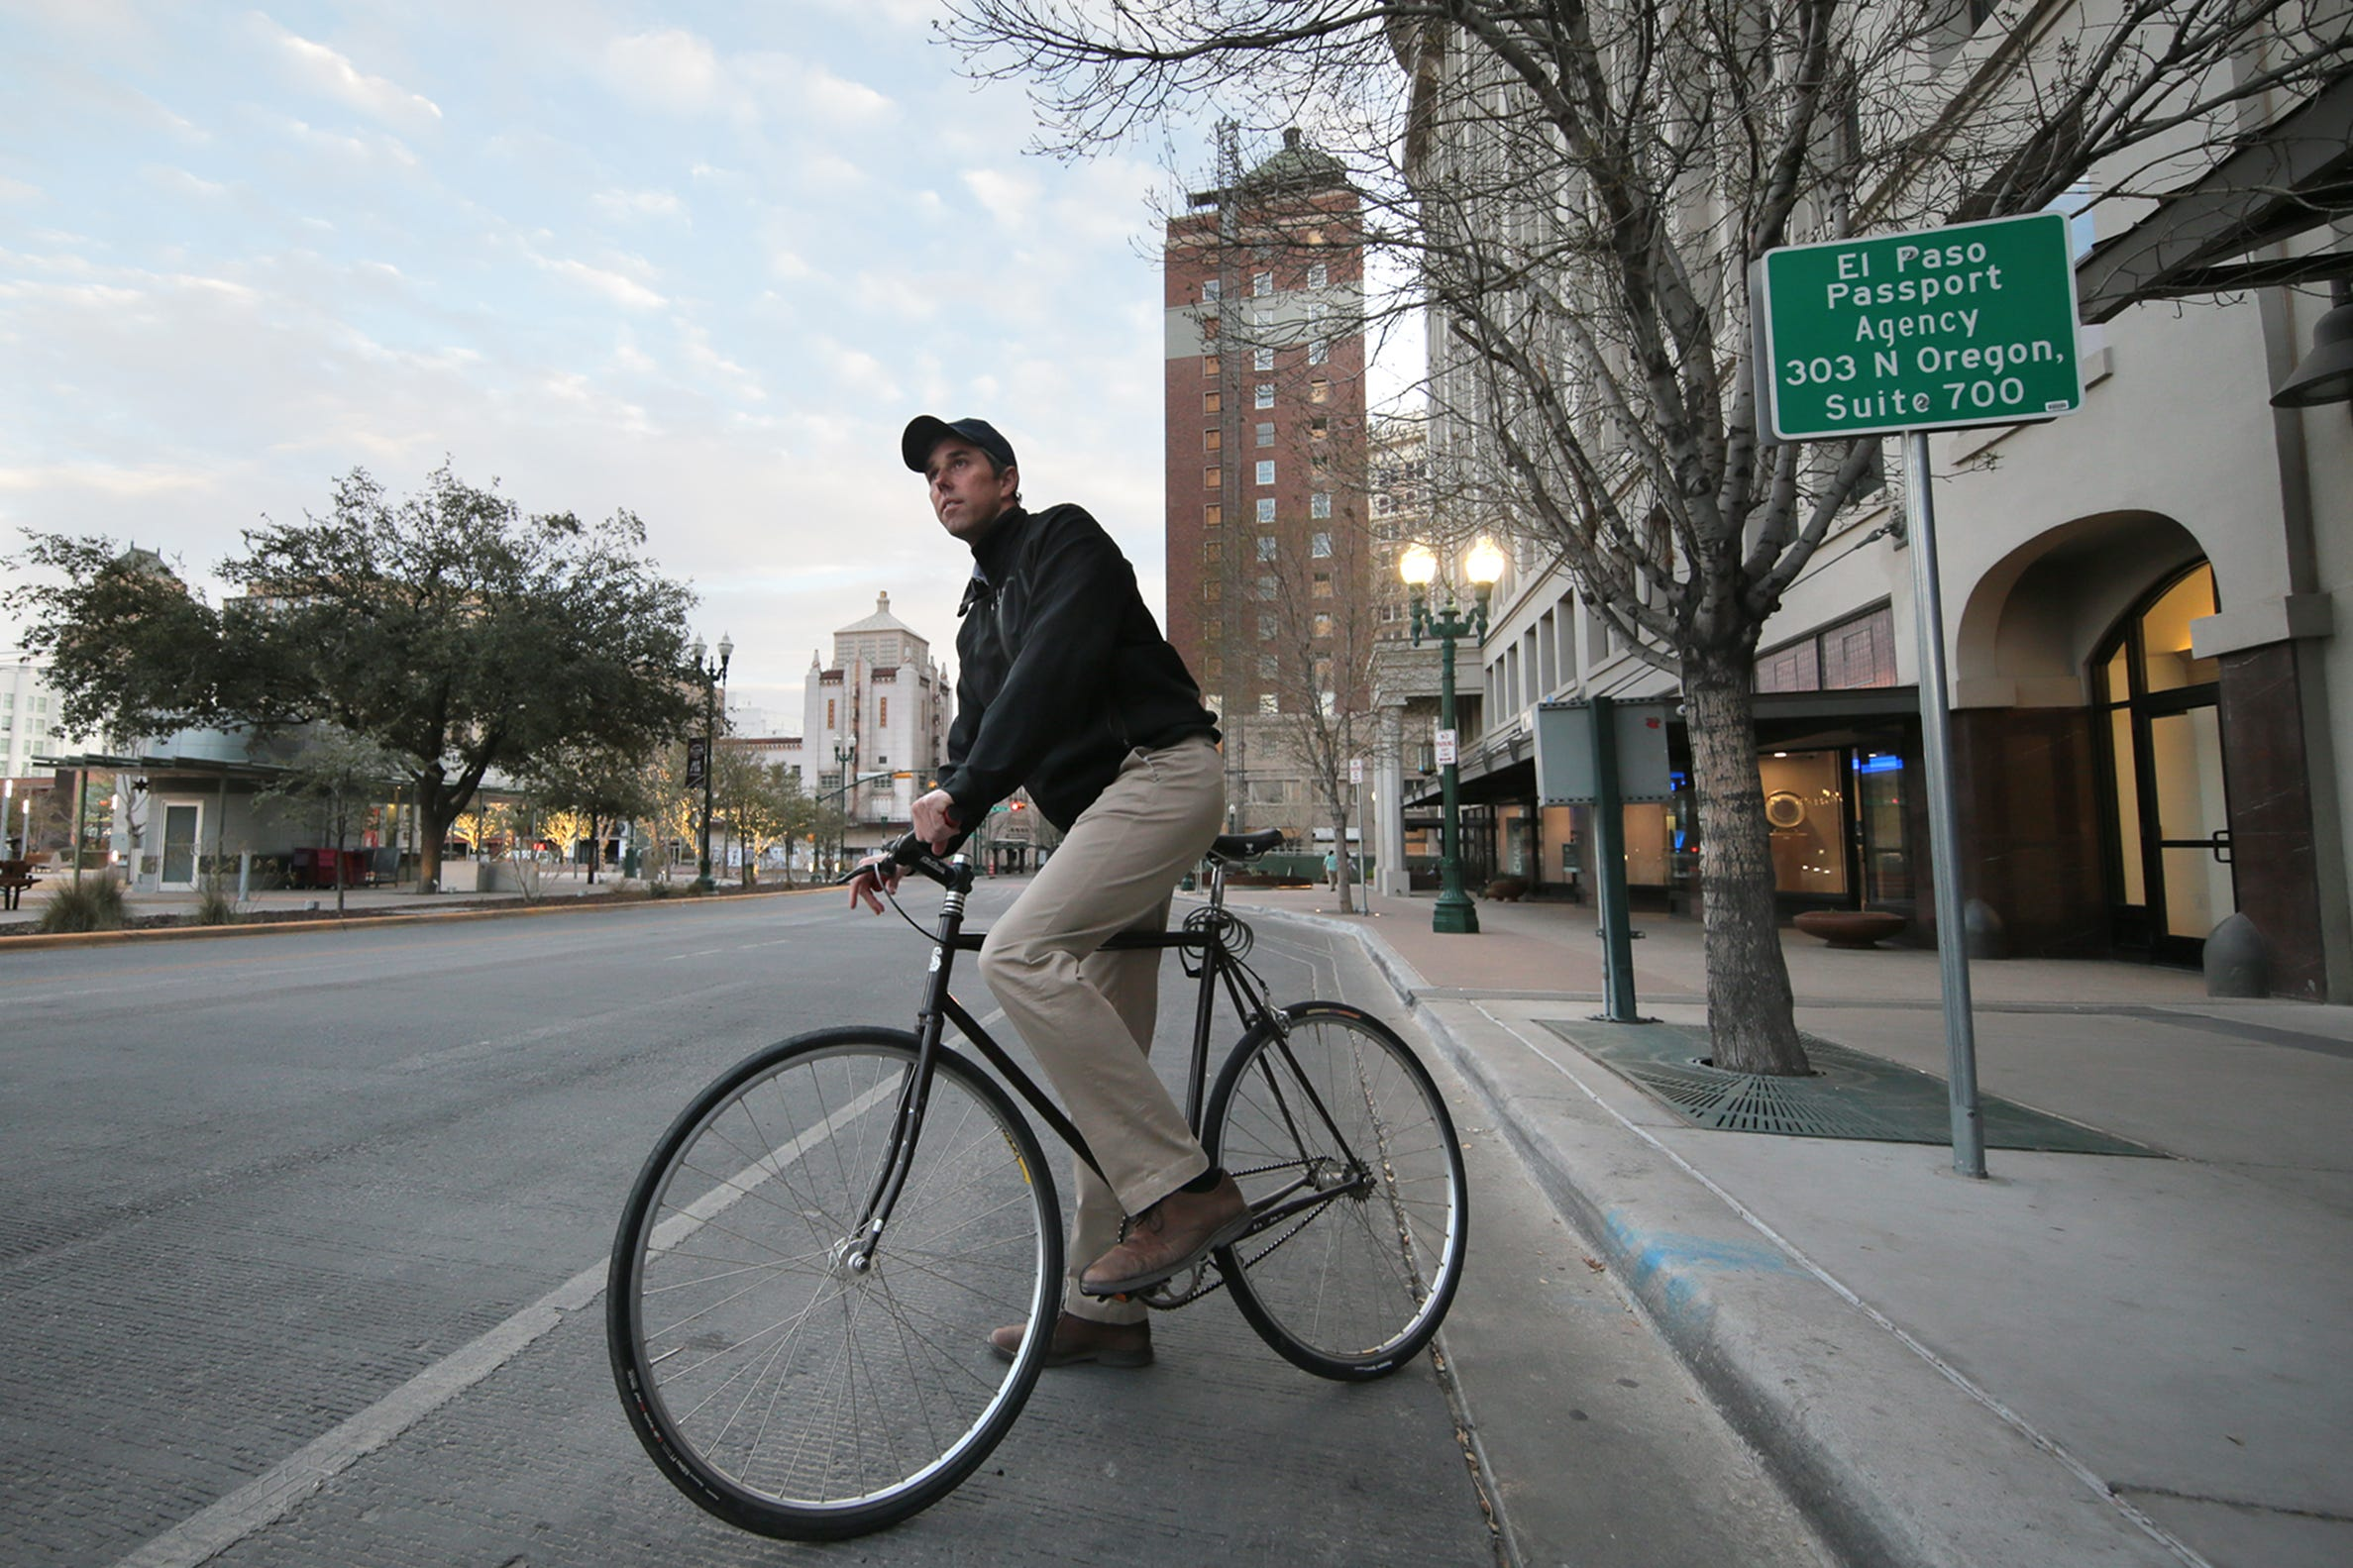 Beto O'Rourke rides off on his bike after speaking at the Moms Demand Action meeting at the El Paso Community Foundation Wednesday. O'Rourke has yet to announce his intentions for a 2020 run.